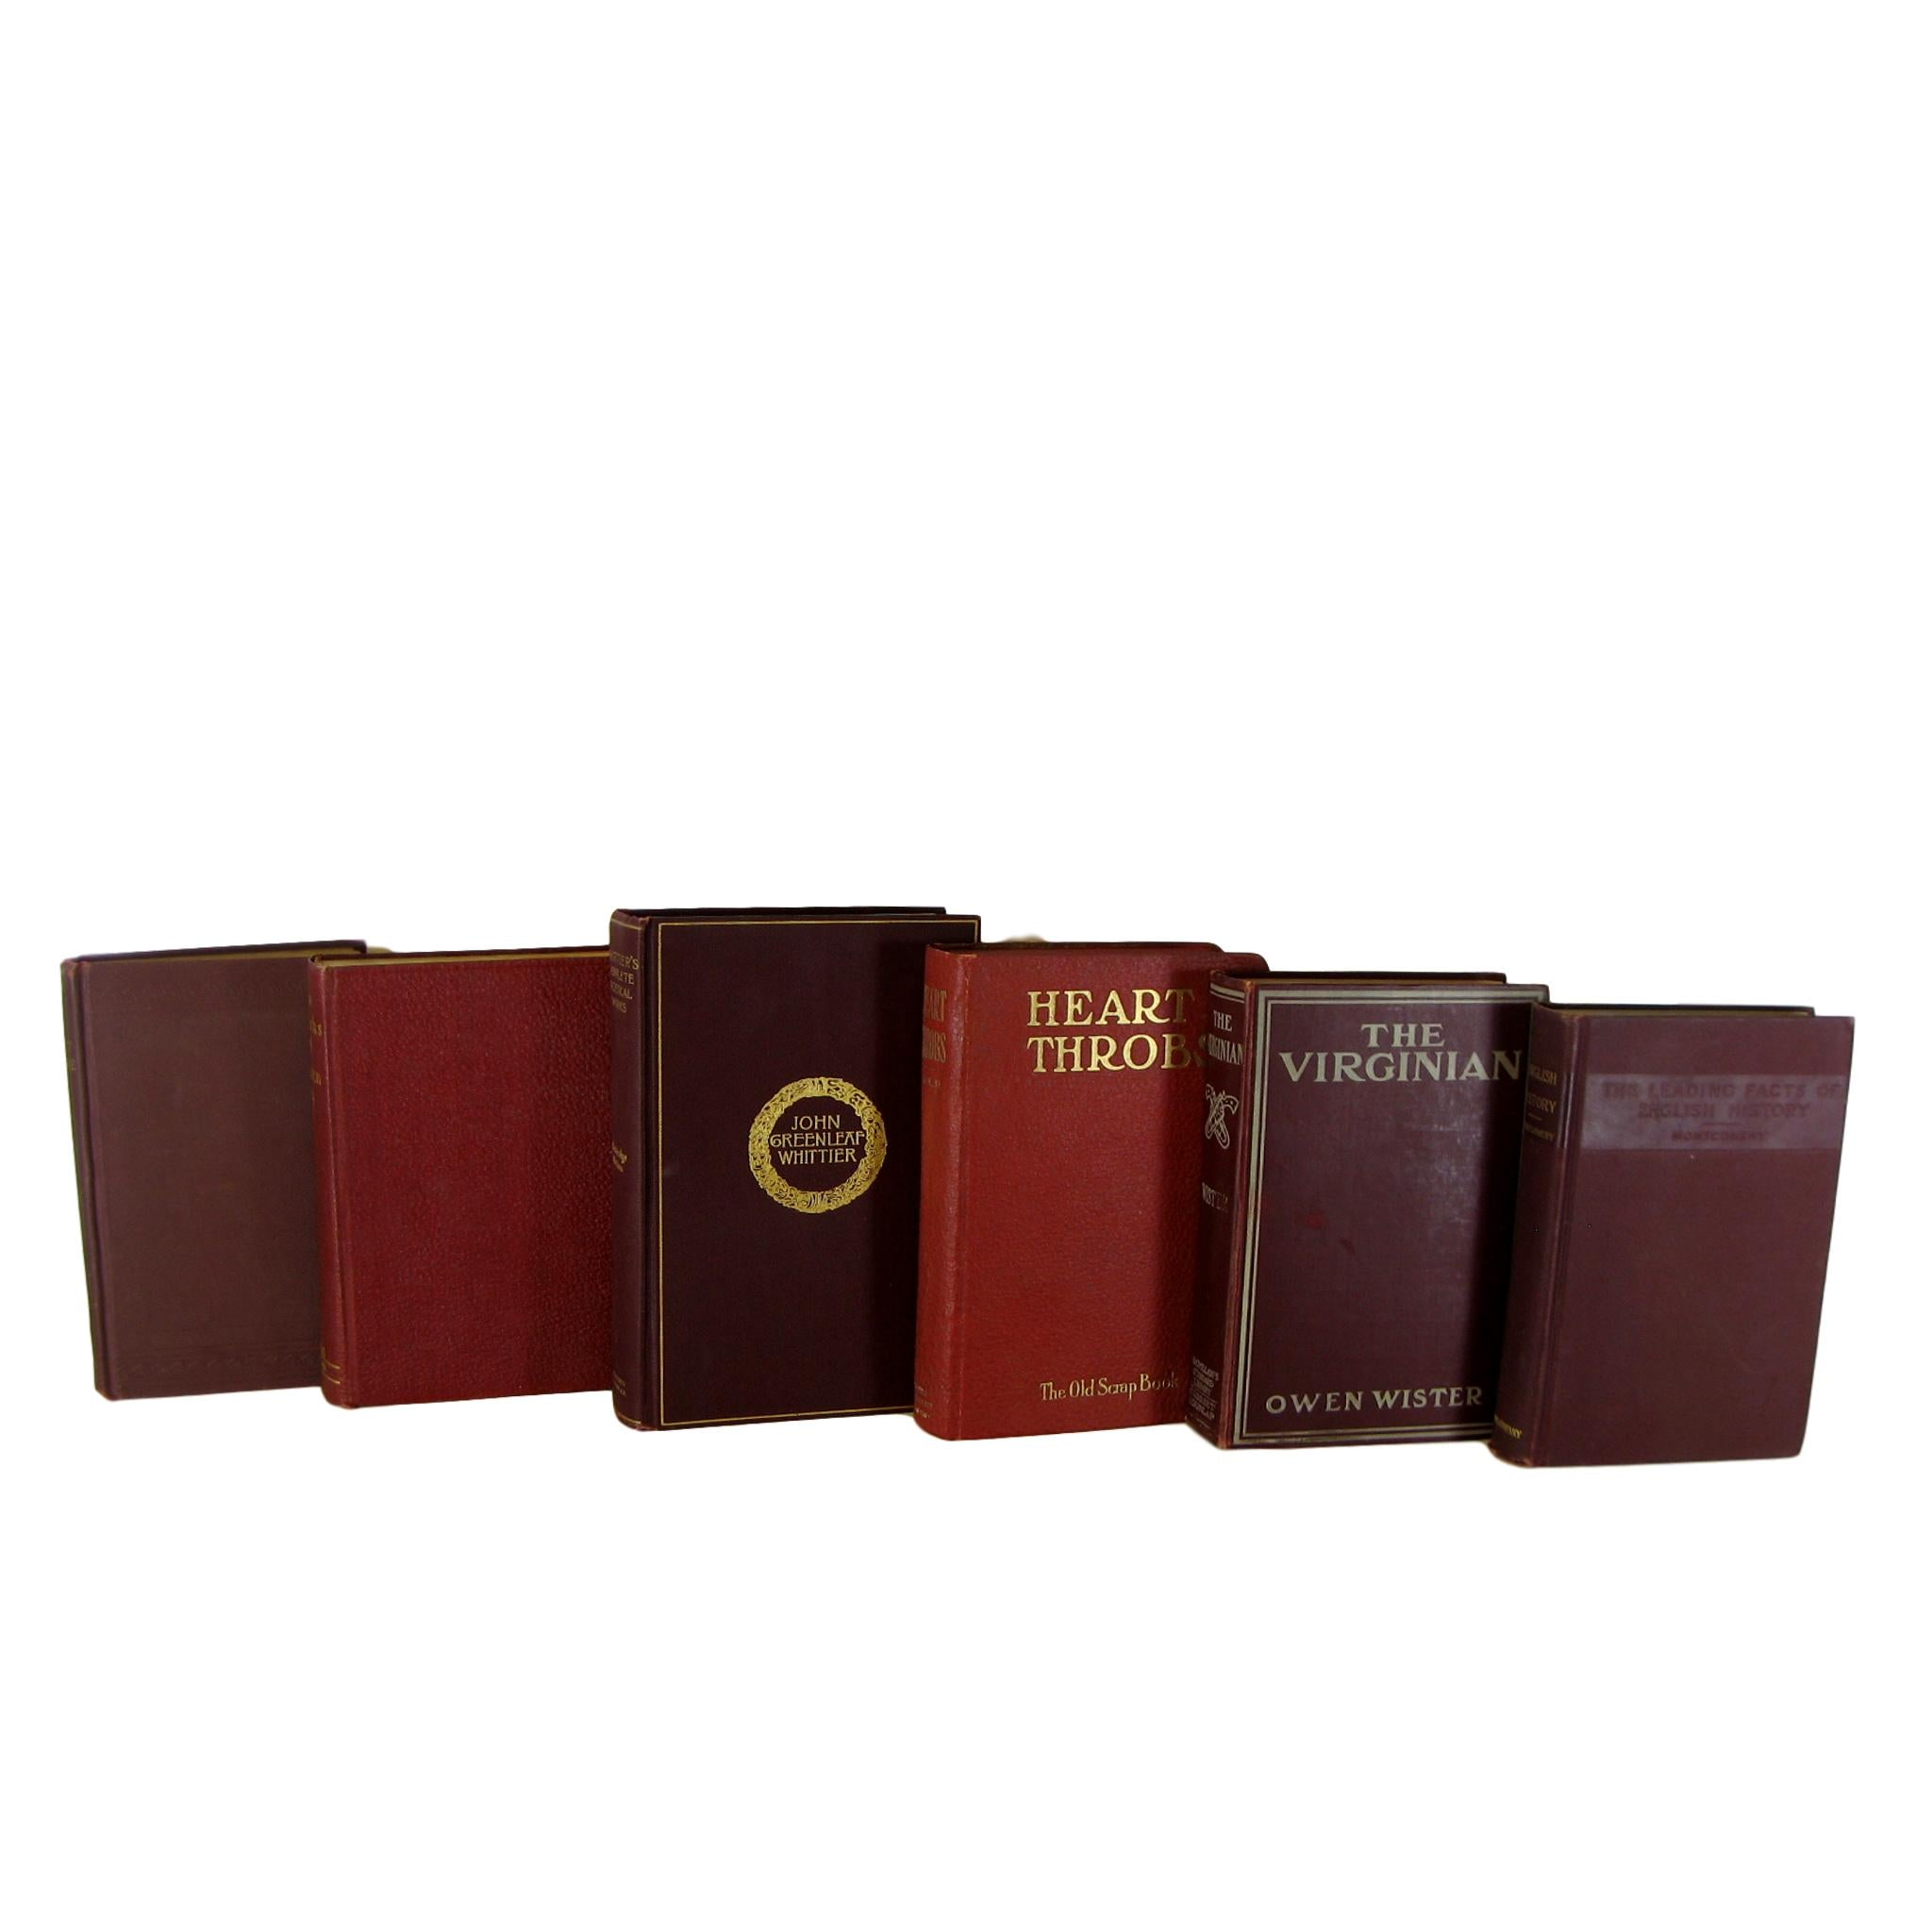 Decorative Book Set in Shades of Deep Reds and Burgundy, S/6 - Decades of Vintage